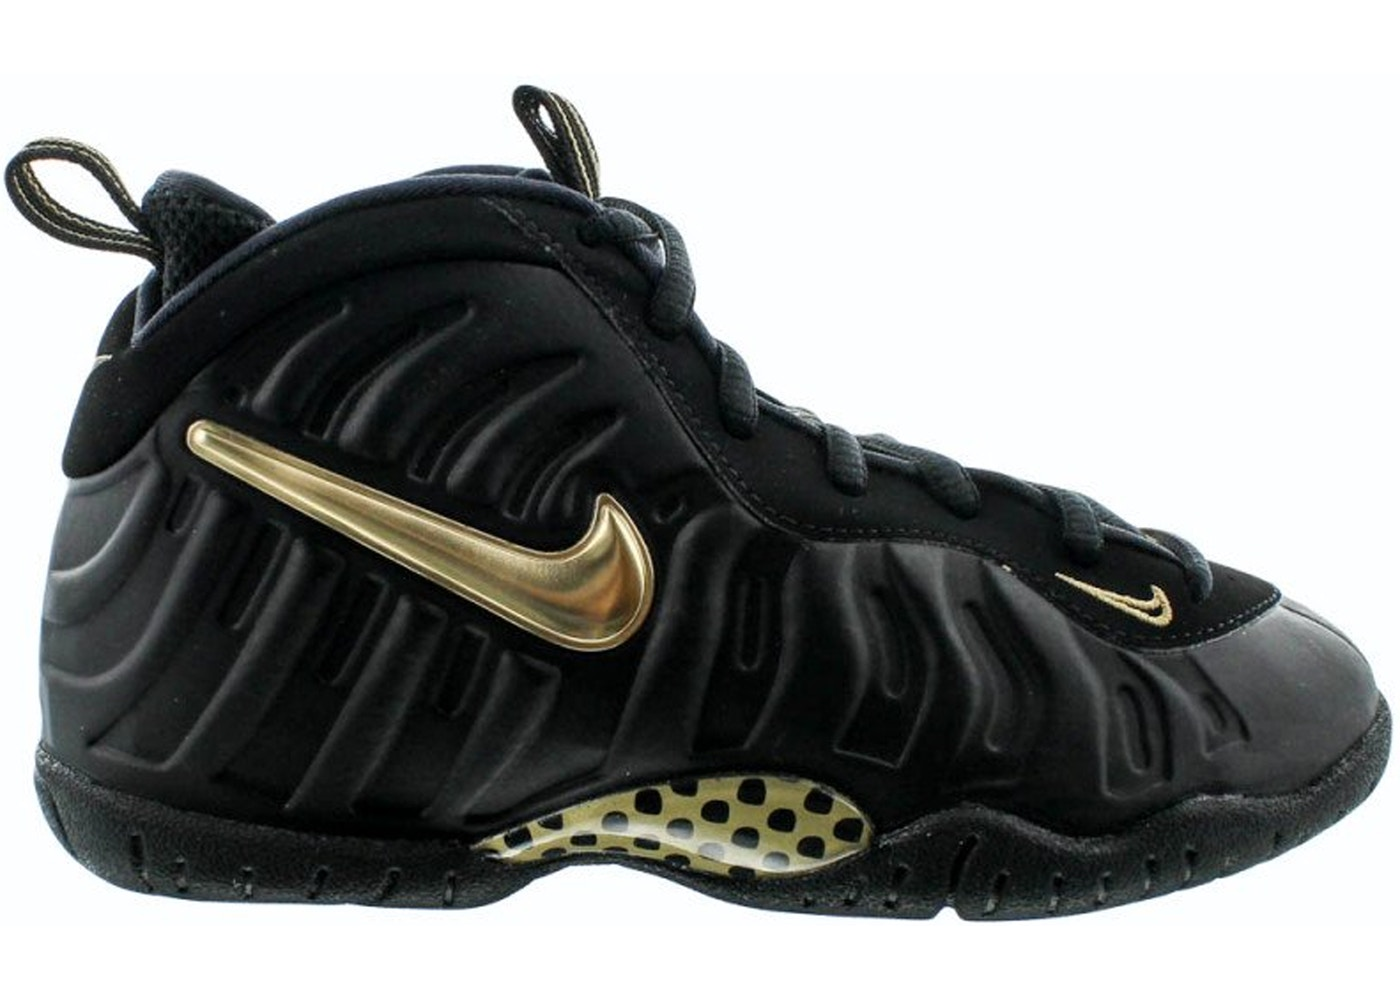 exquisite design sneakers for cheap save up to 80% Nike Air Foamposite Pro Black Metallic Gold (PS) - 843755-010